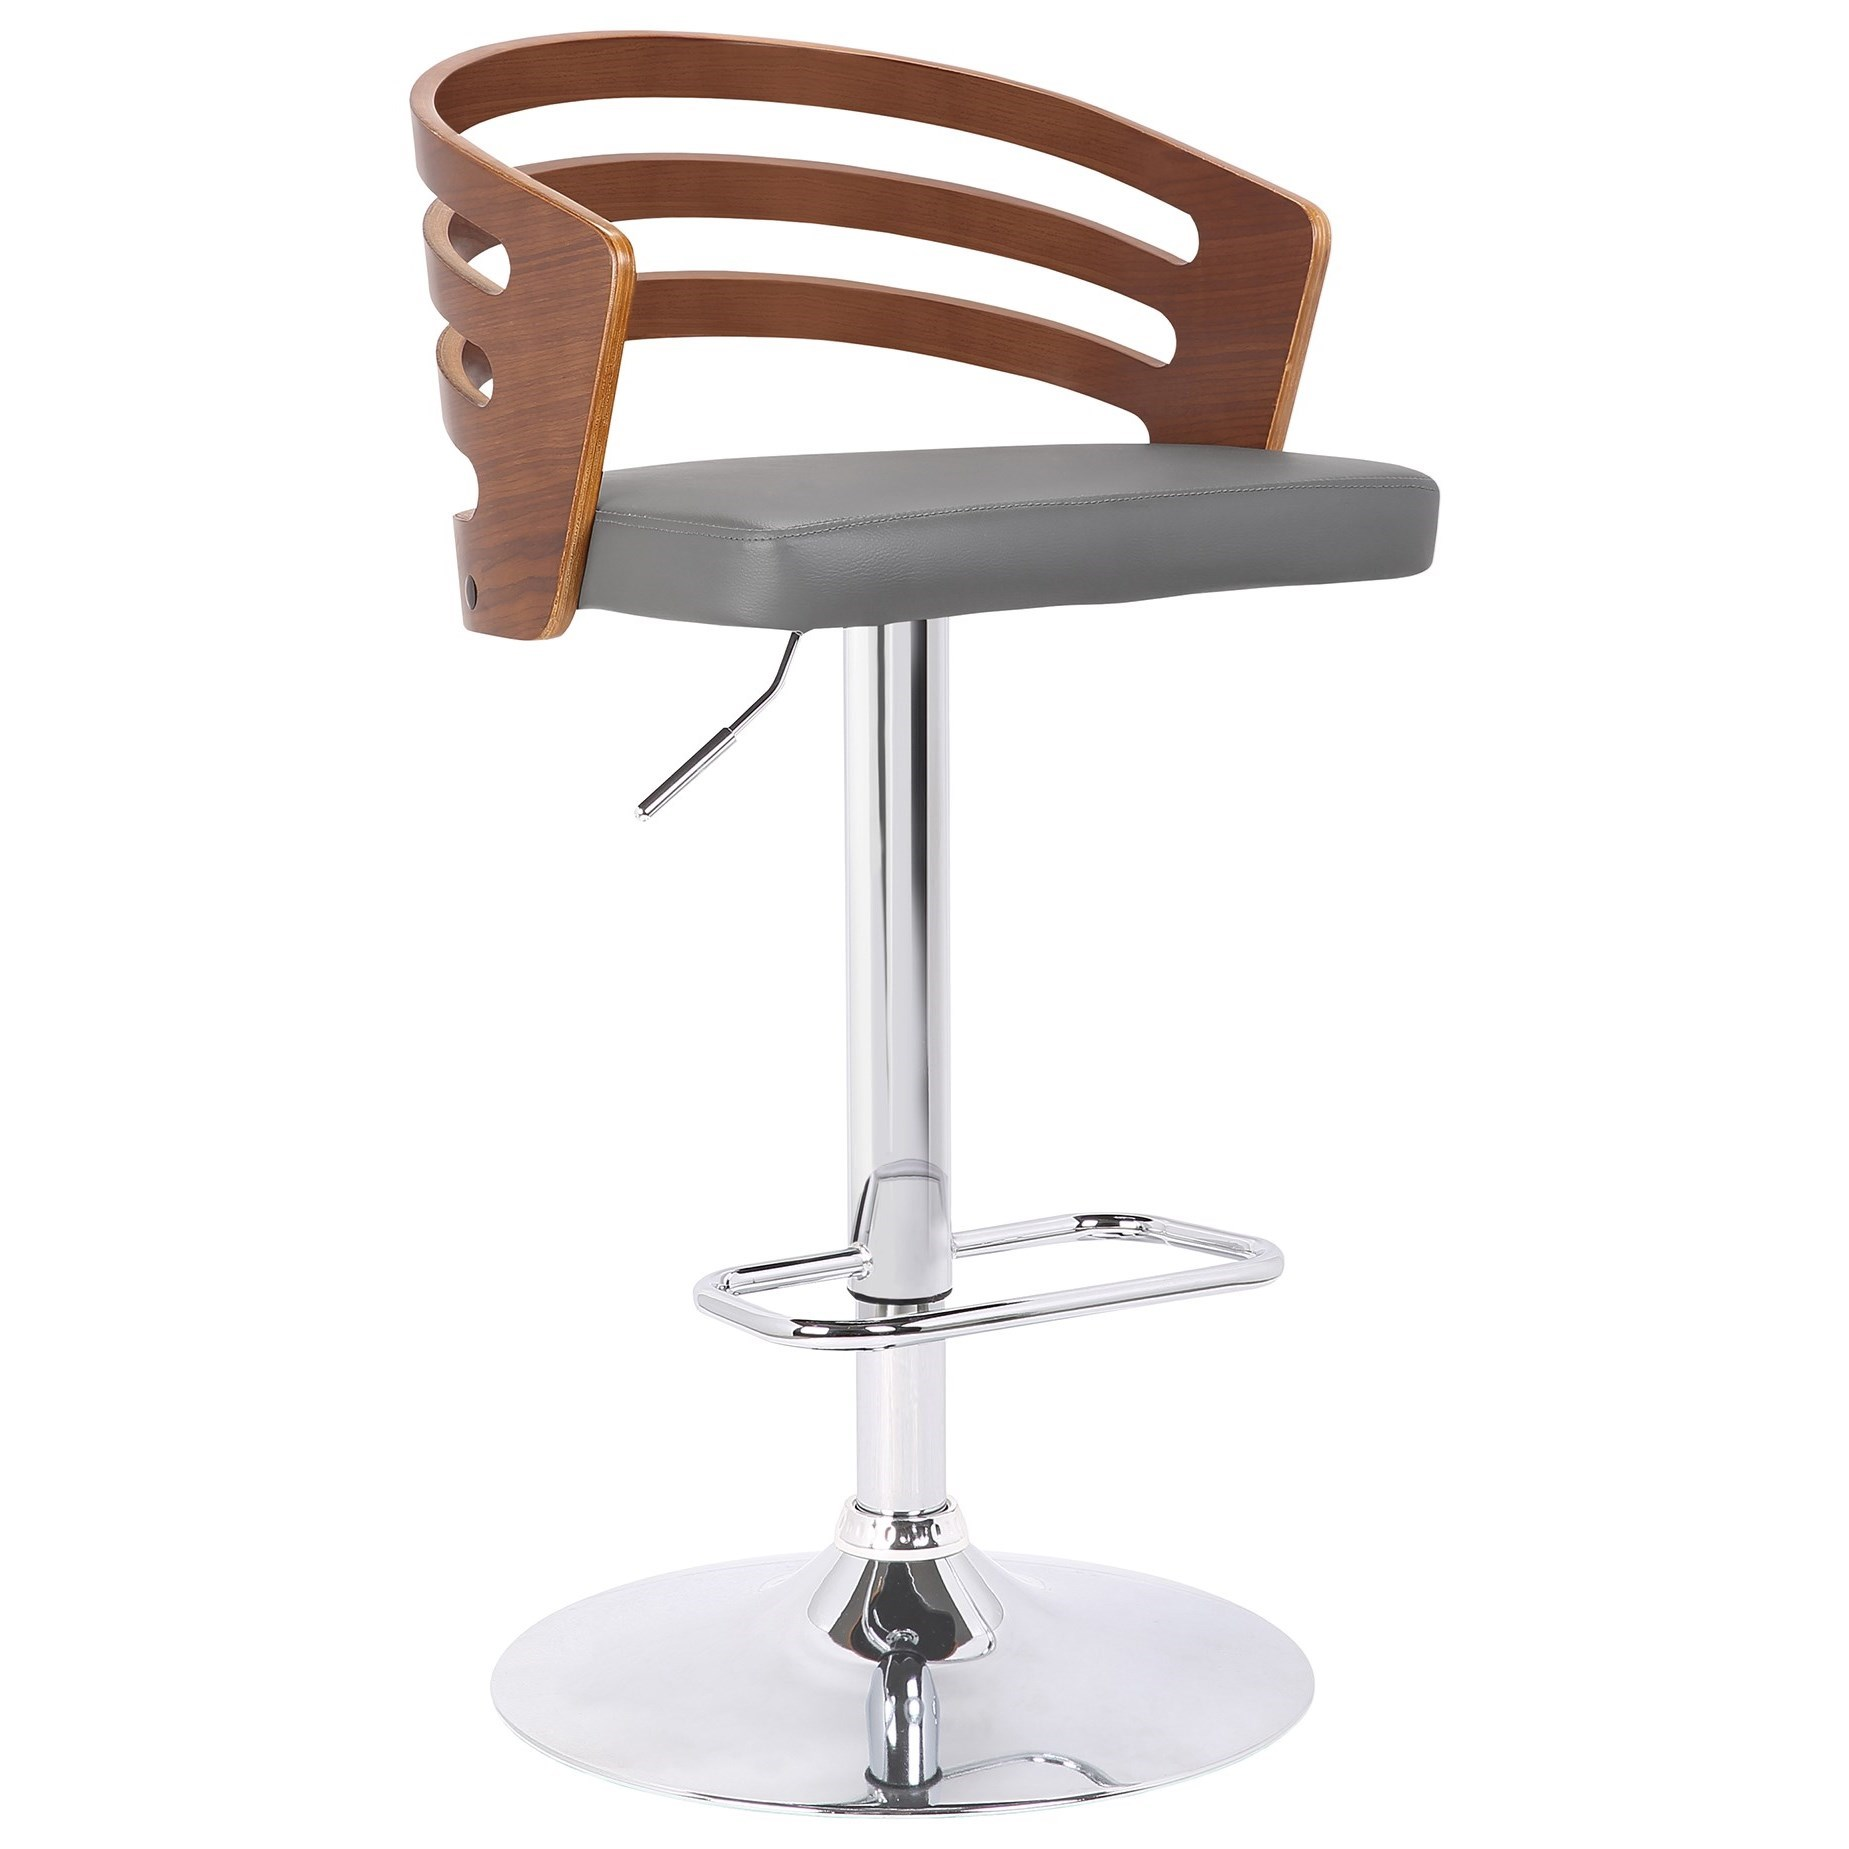 Adele Mid-Century Adjustable Swivel Barstool by Armen Living at Fisher Home Furnishings